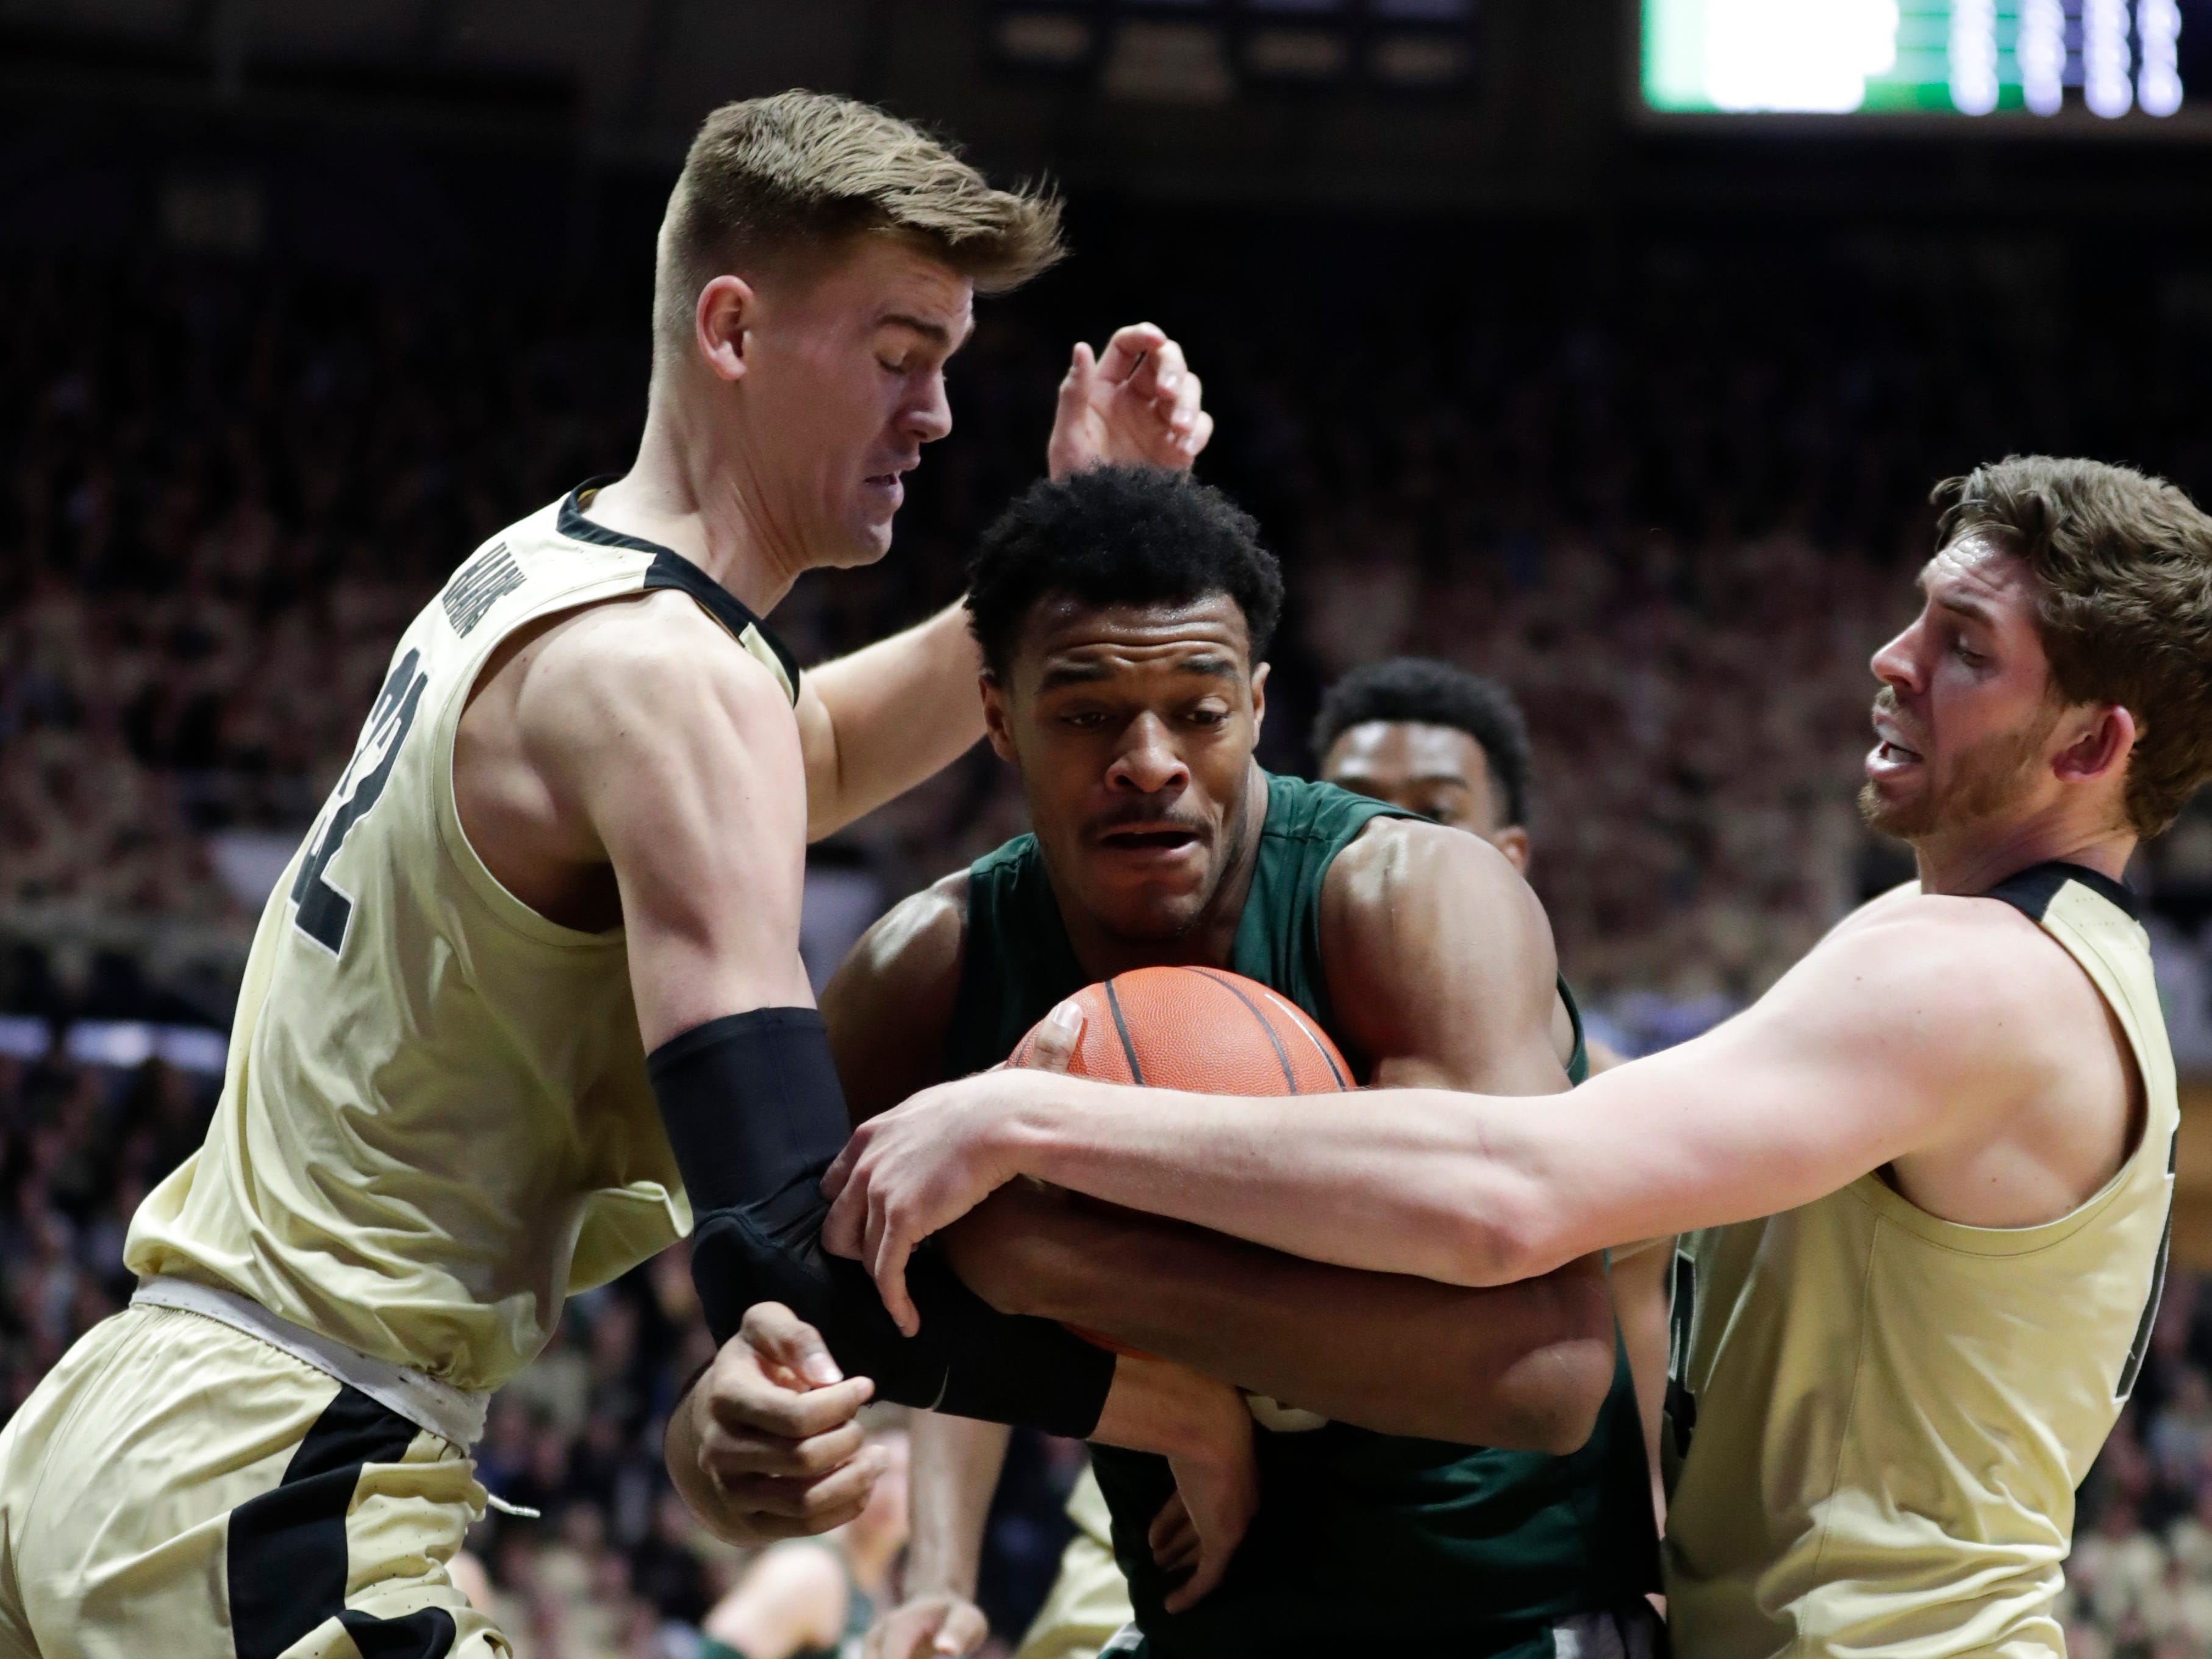 Michigan State forward Xavier Tillman is tied up by Purdue center Matt Haarms, left, and guard Ryan Cline during the first half on Sunday, Jan. 27, 2019, in West Lafayette, Ind.